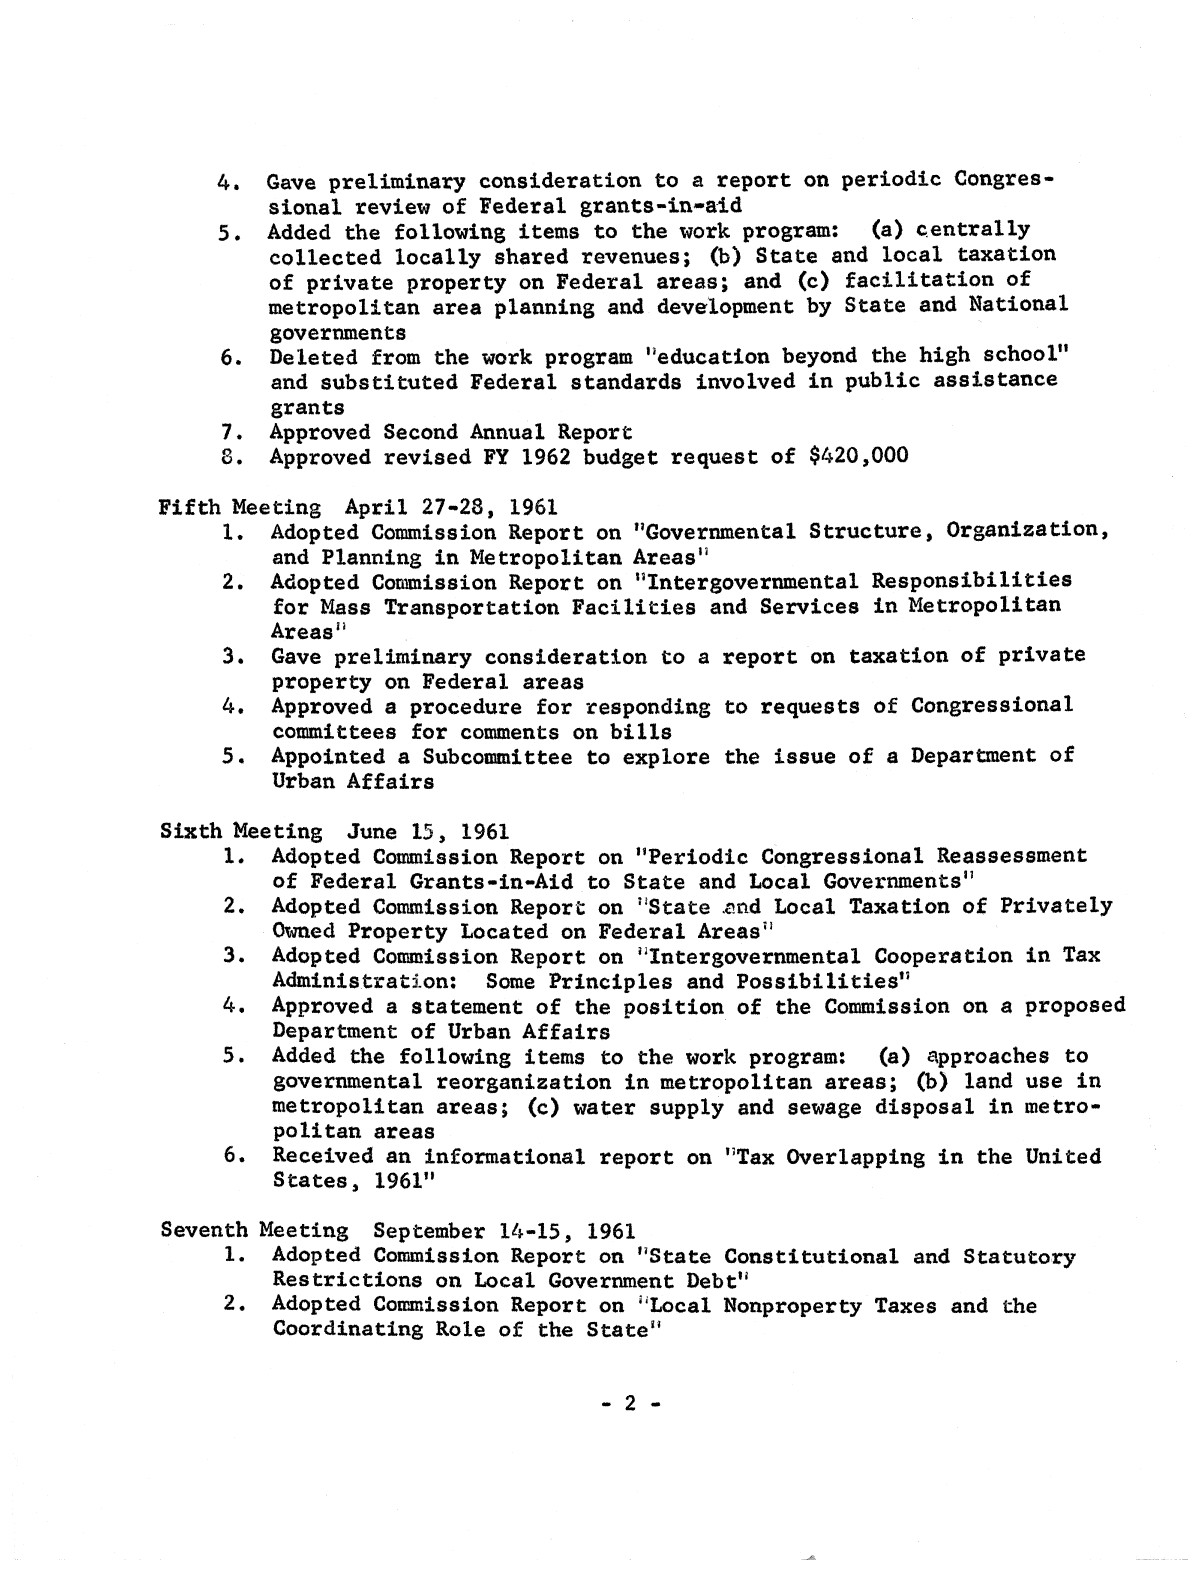 Summary of actions taken by the Advisory Commission on Intergovernmental Relations                                                                                                      2